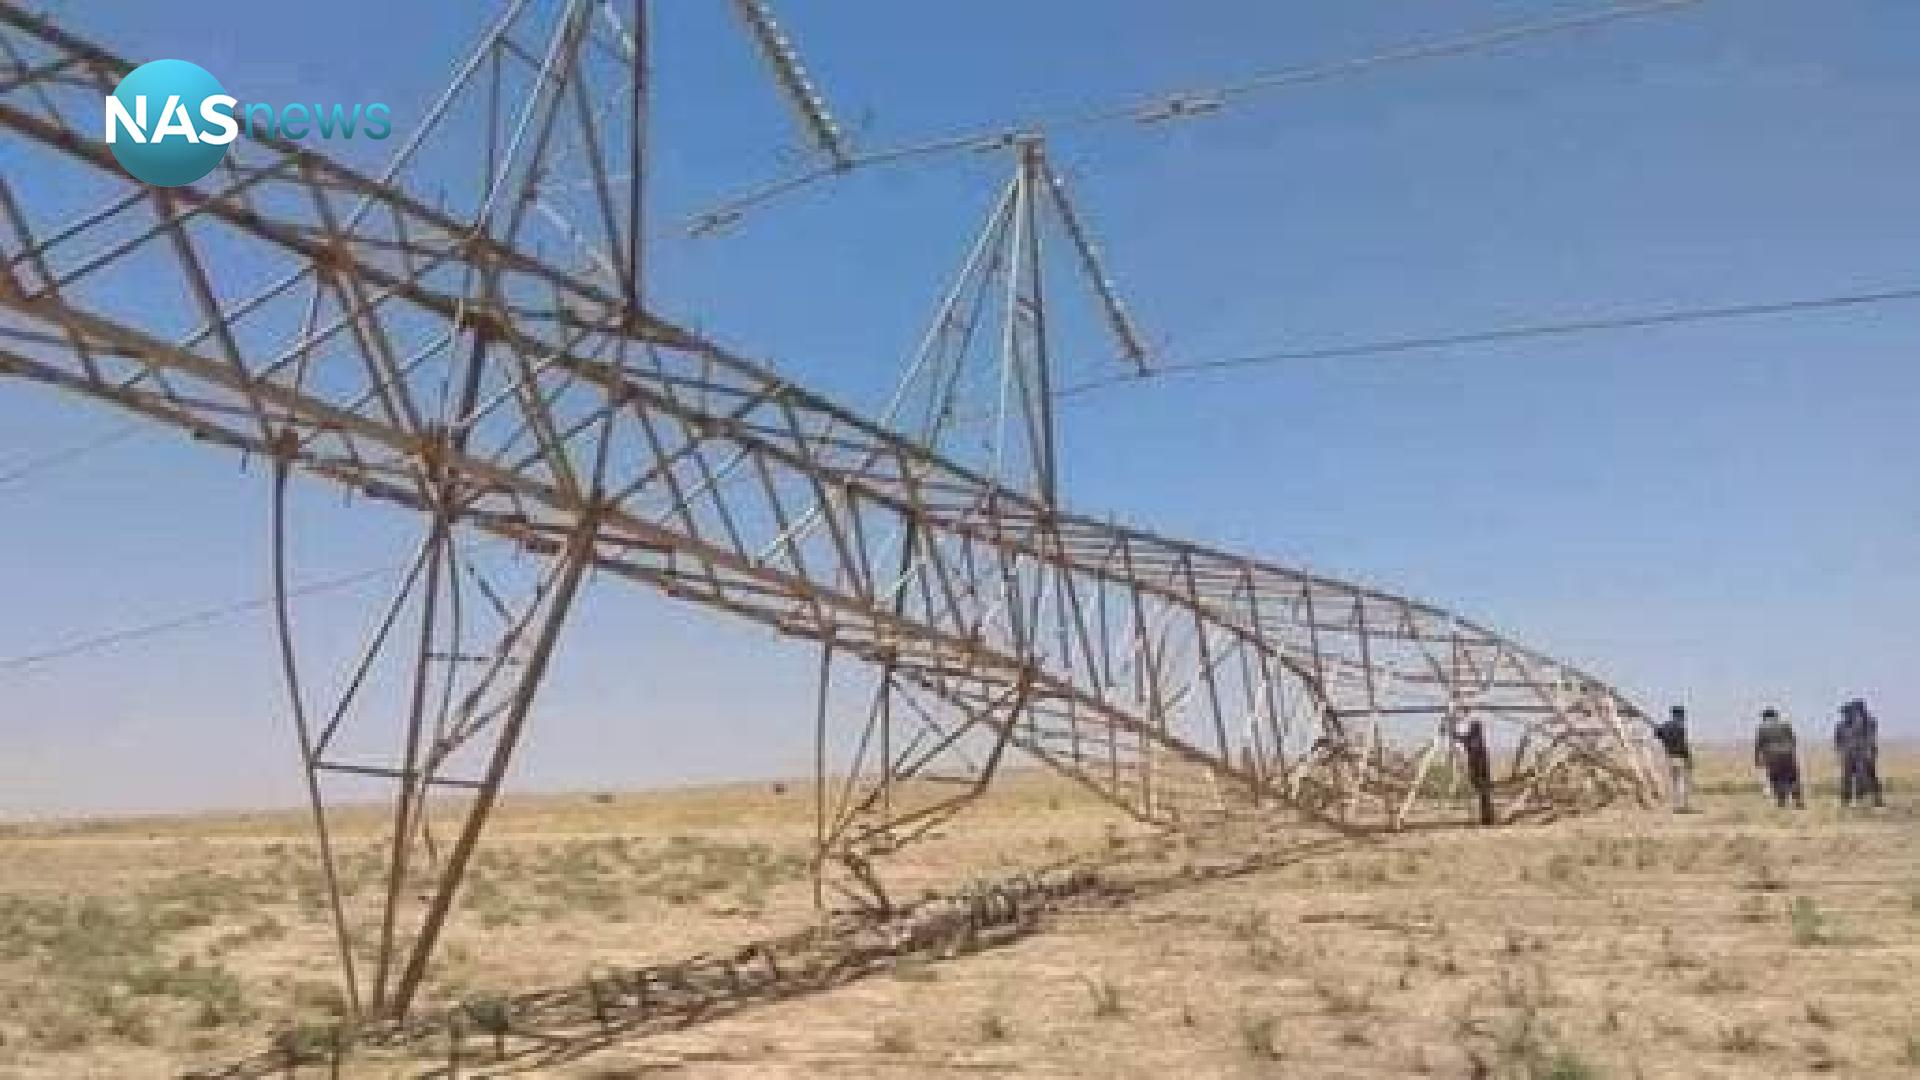 Electricity - a new attack that cuts the national system